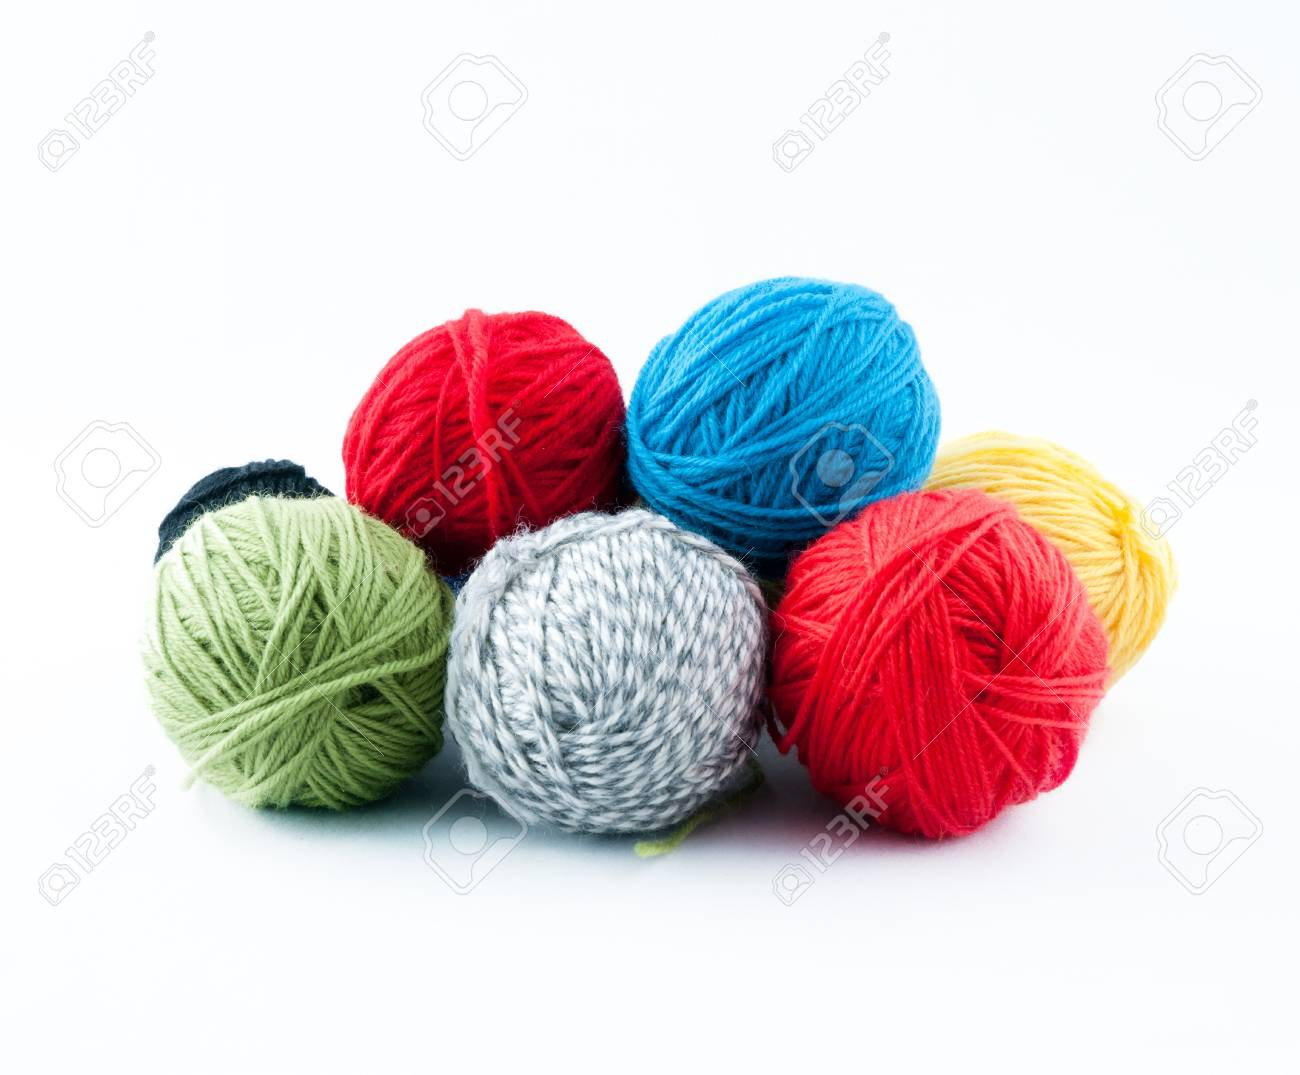 Colorful ball of yarn Stock Photo - 13299914